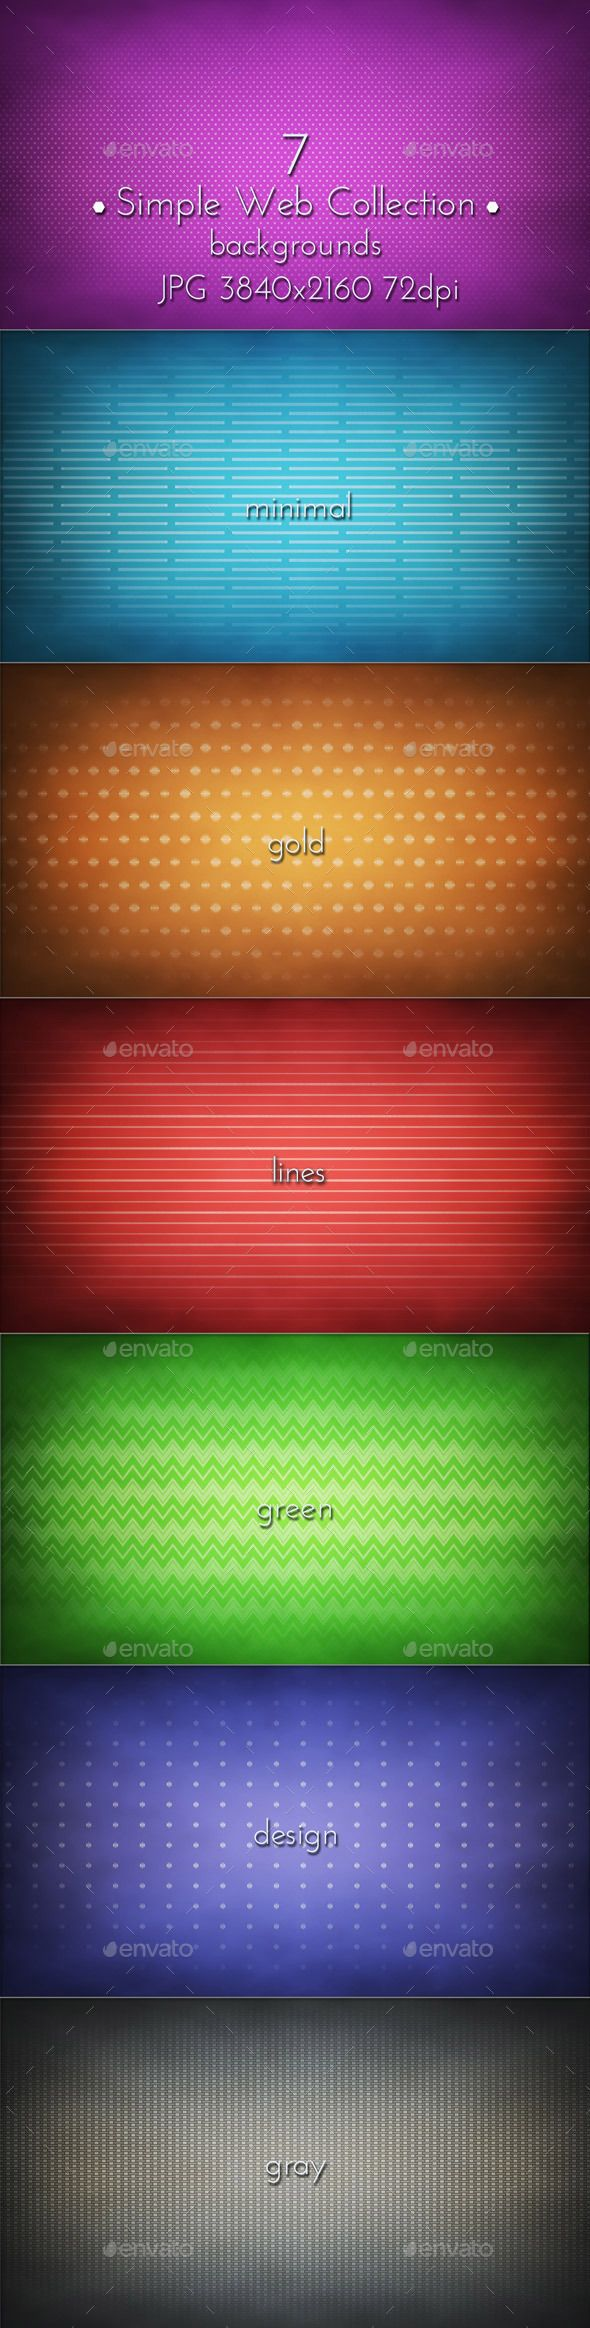 Simple Web Backgrounds by cinema4design. #design #backgrounds